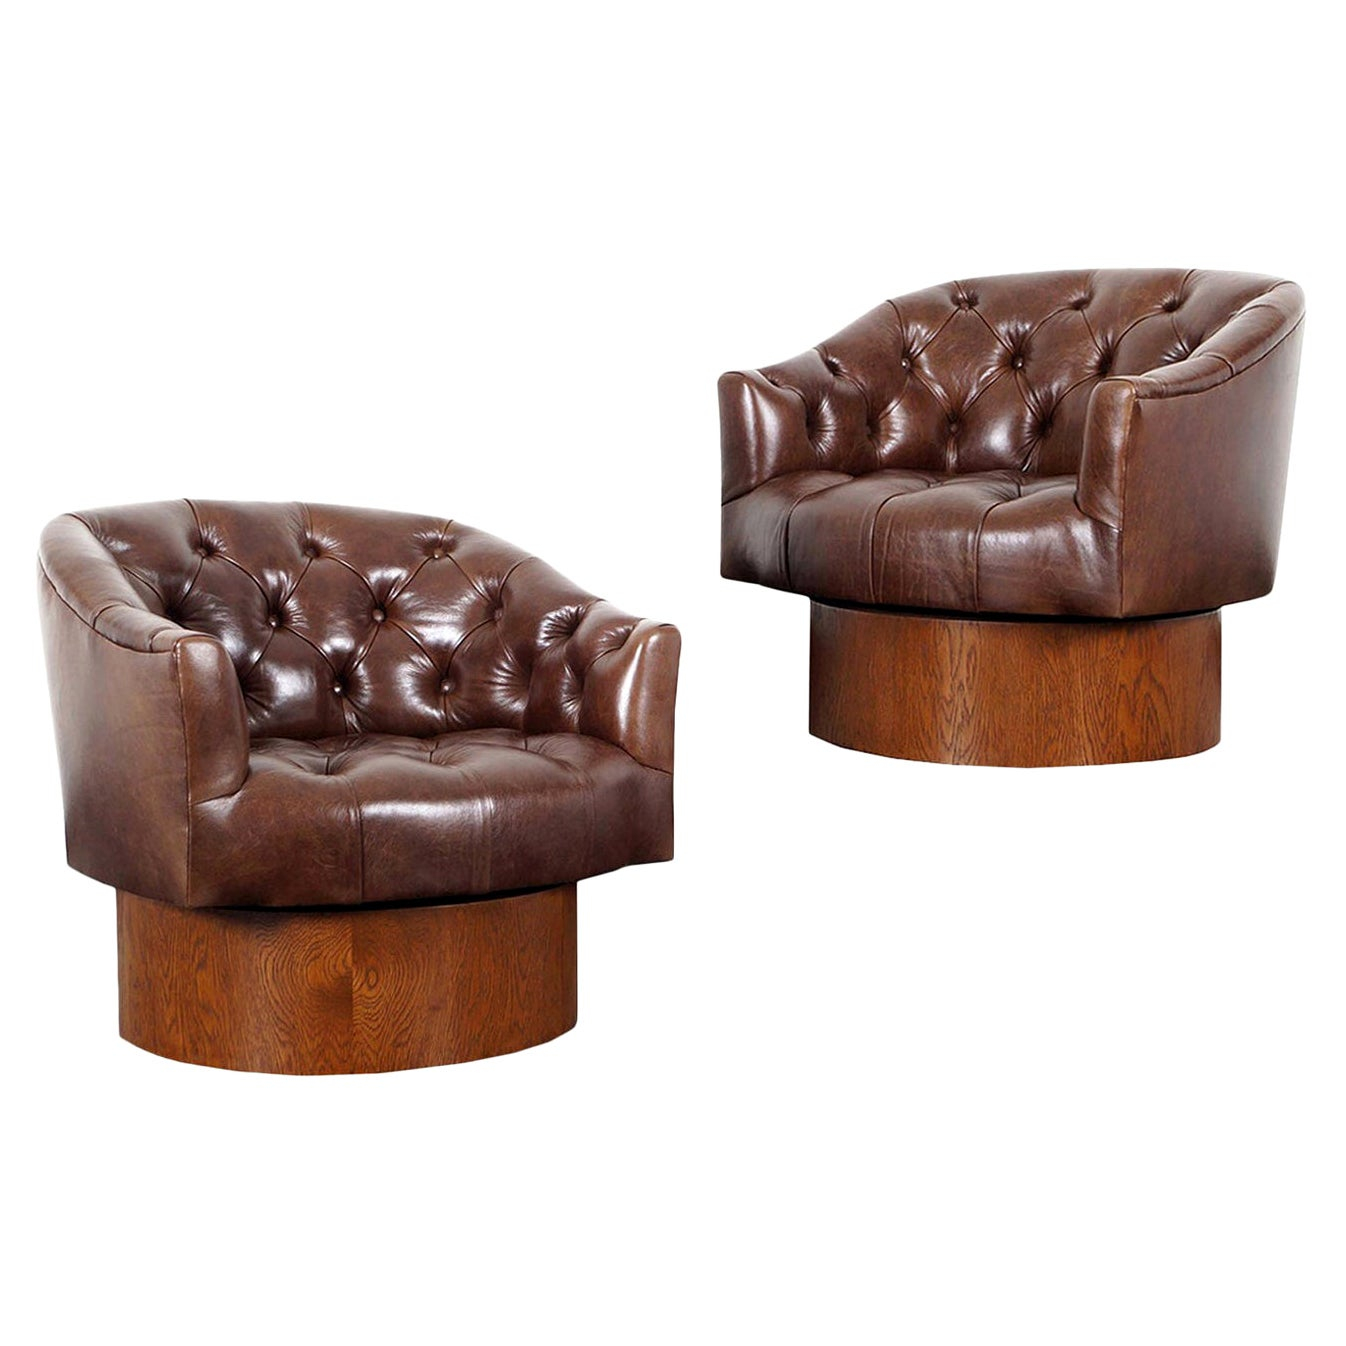 Vintage Leather Swivel Lounge Chairs by Milo Baughman